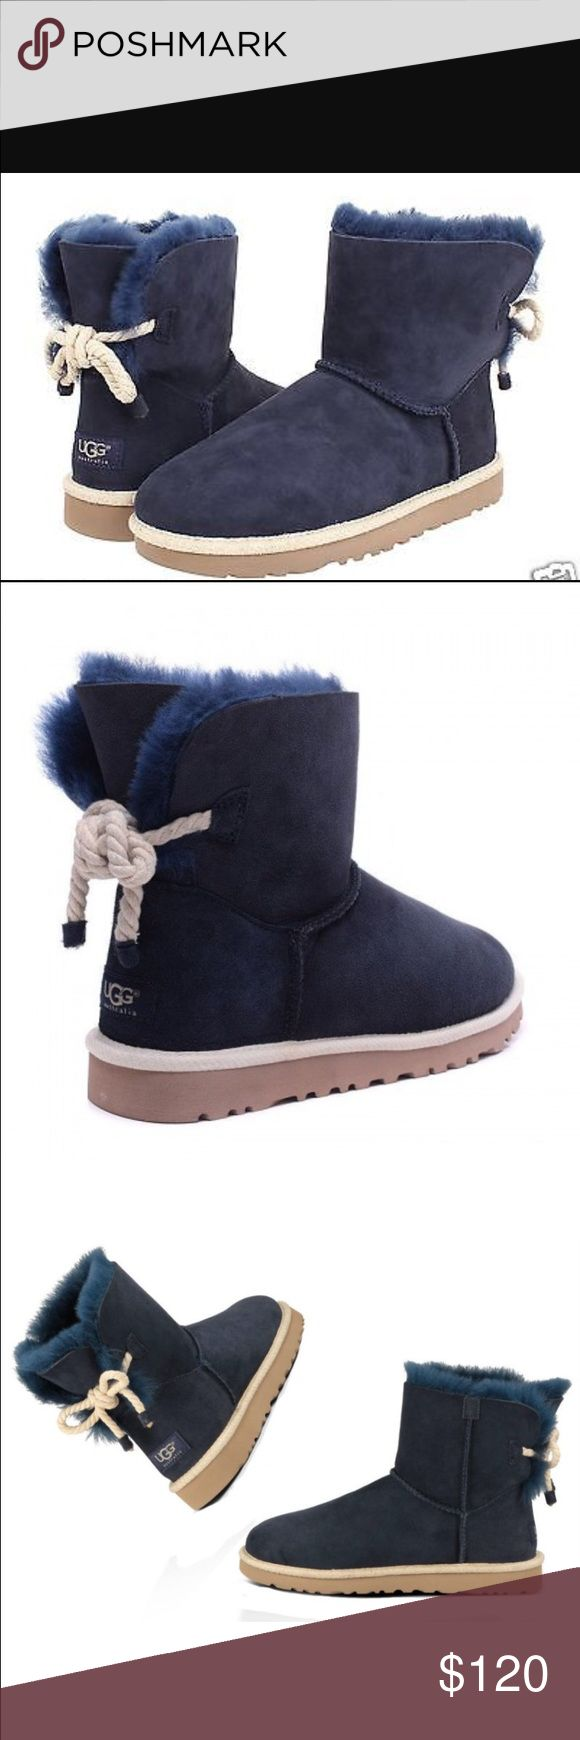 NEW UGG SELENE NÁUTICA Cal rope boot NAVY Englin's Fine Footwear presents the women's 'Selene' from UGG Australia. This adorable update to the original is calling for a coastal excursion, with its nautical rope detail and jute binding. WITHOUT BOX. UGG Shoes Ankle Boots & Booties